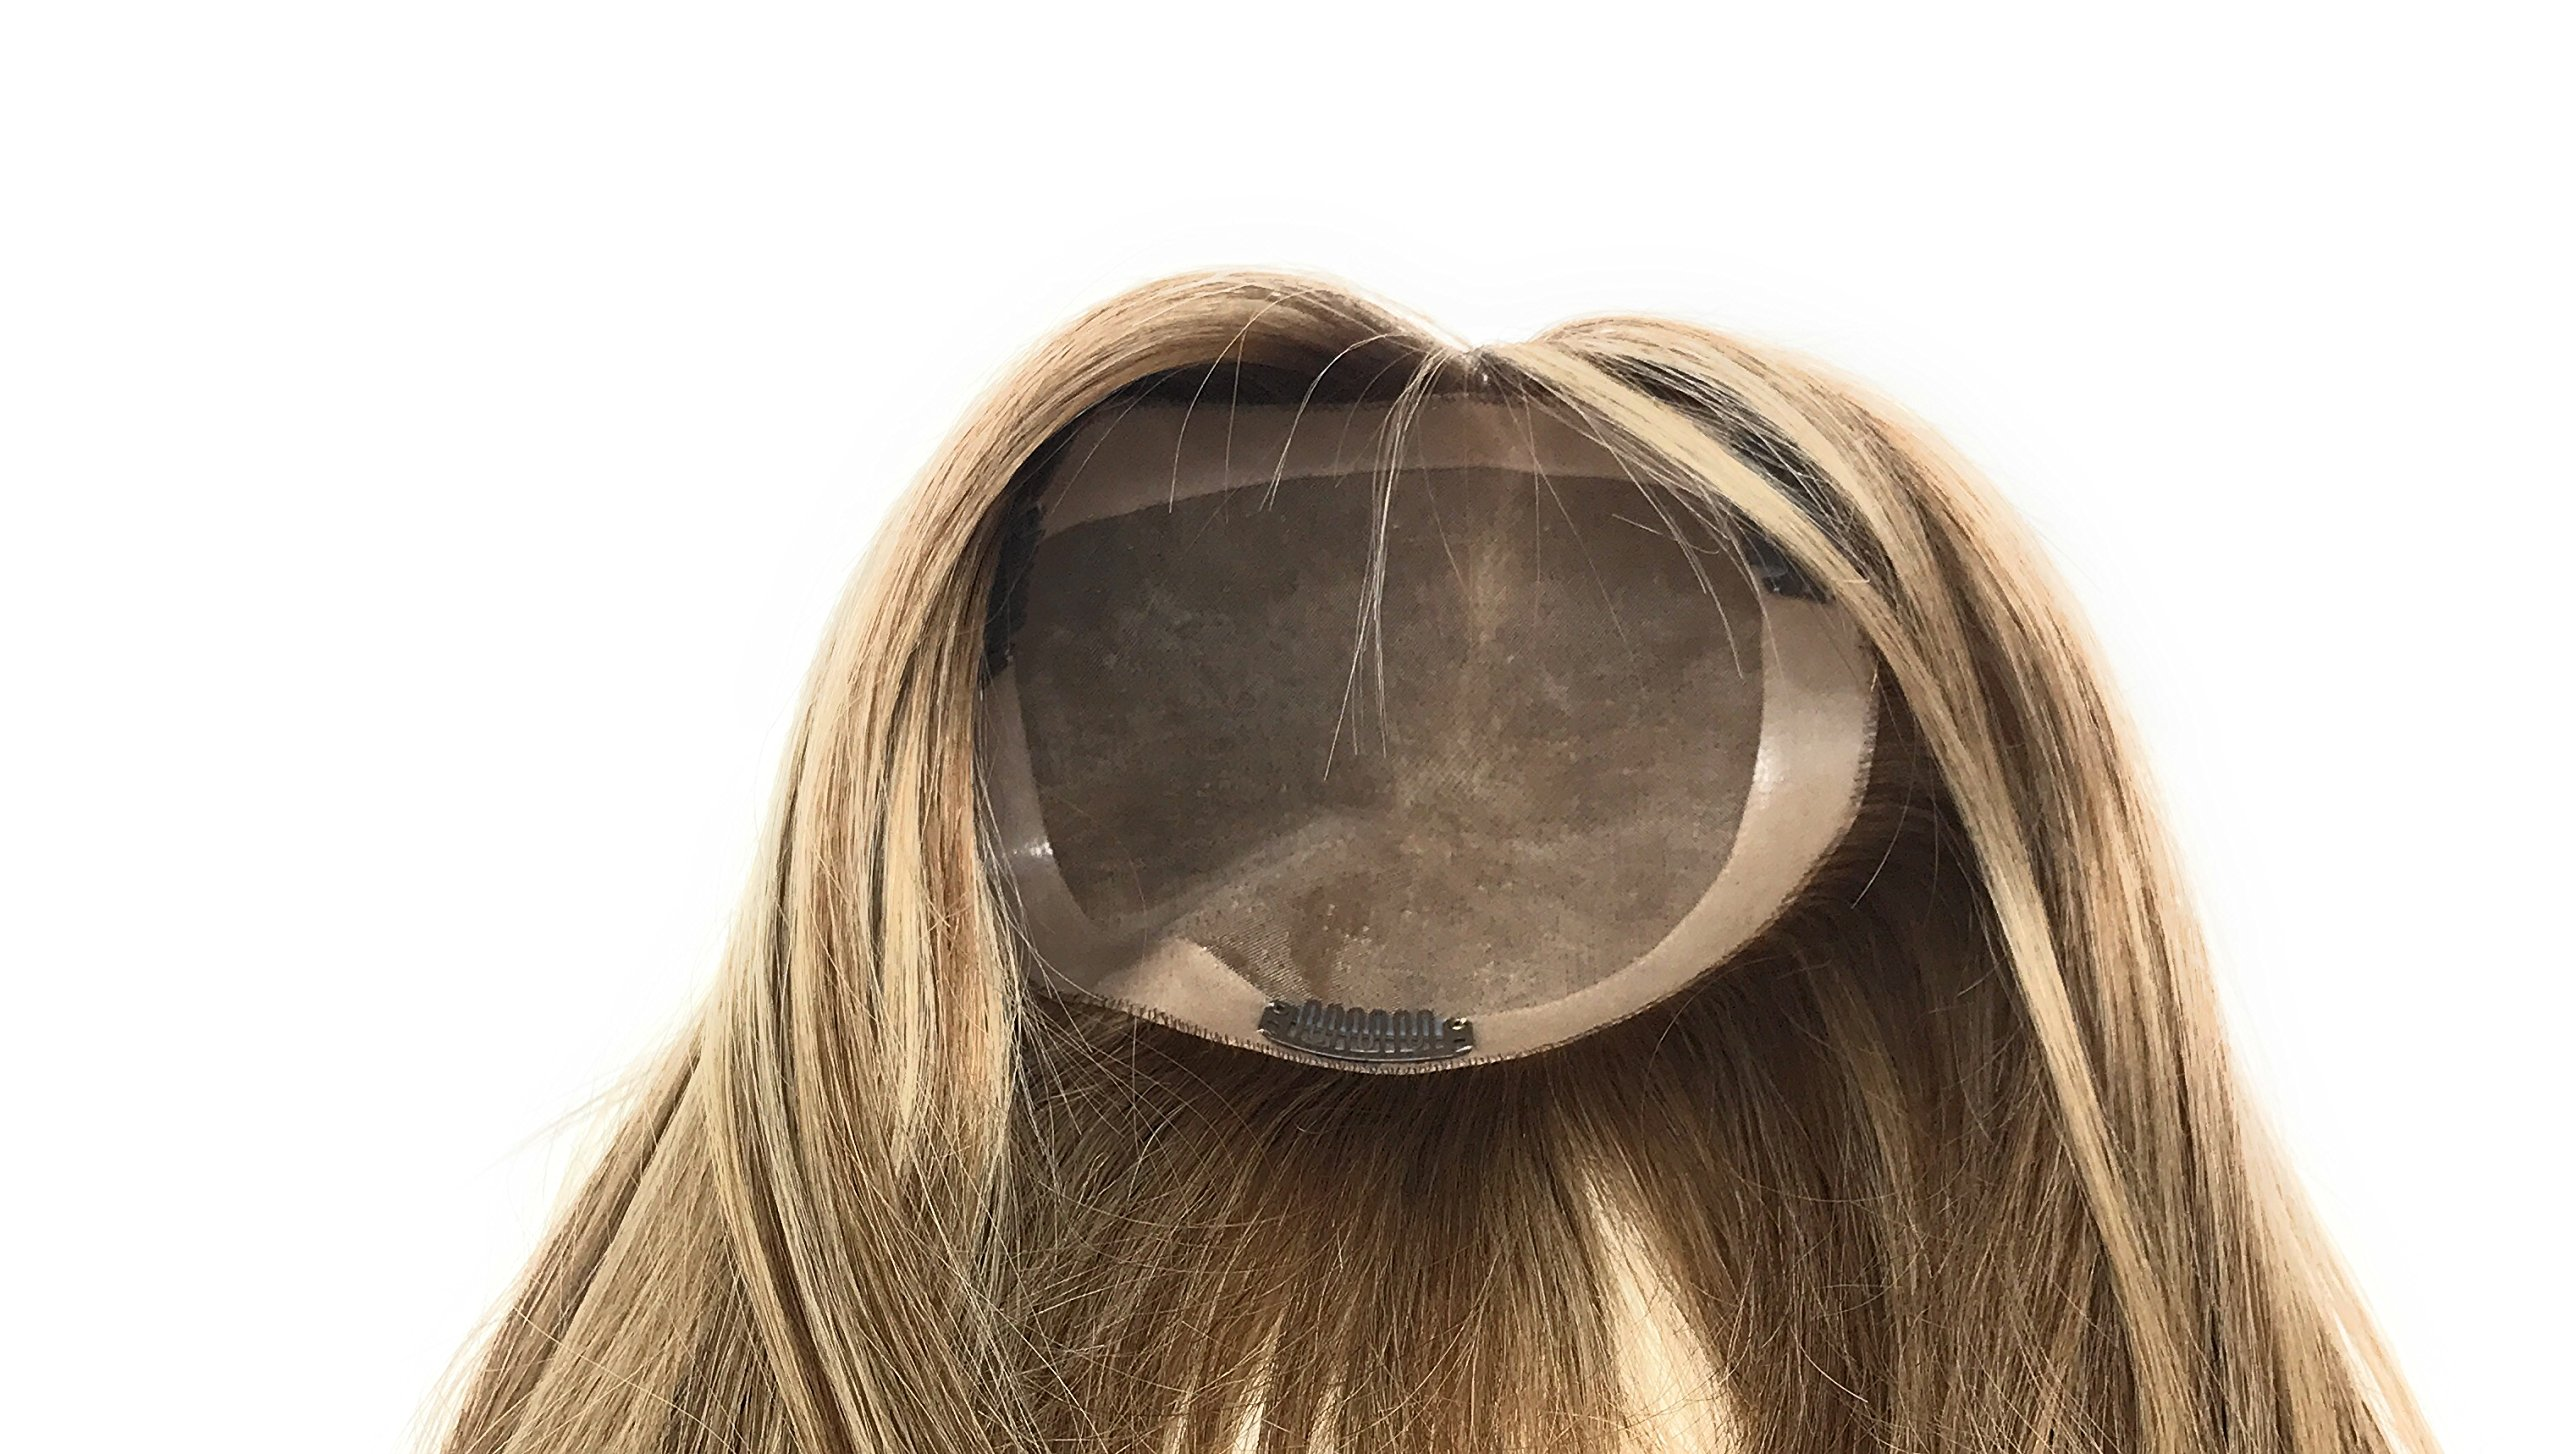 10 inch Long Straight Real Natural Human Hair – Women's Kippah Toppers - Monofilament Bondable Hairpiece Closure / Cover Color #6/613 Light Brown W/ Platinum